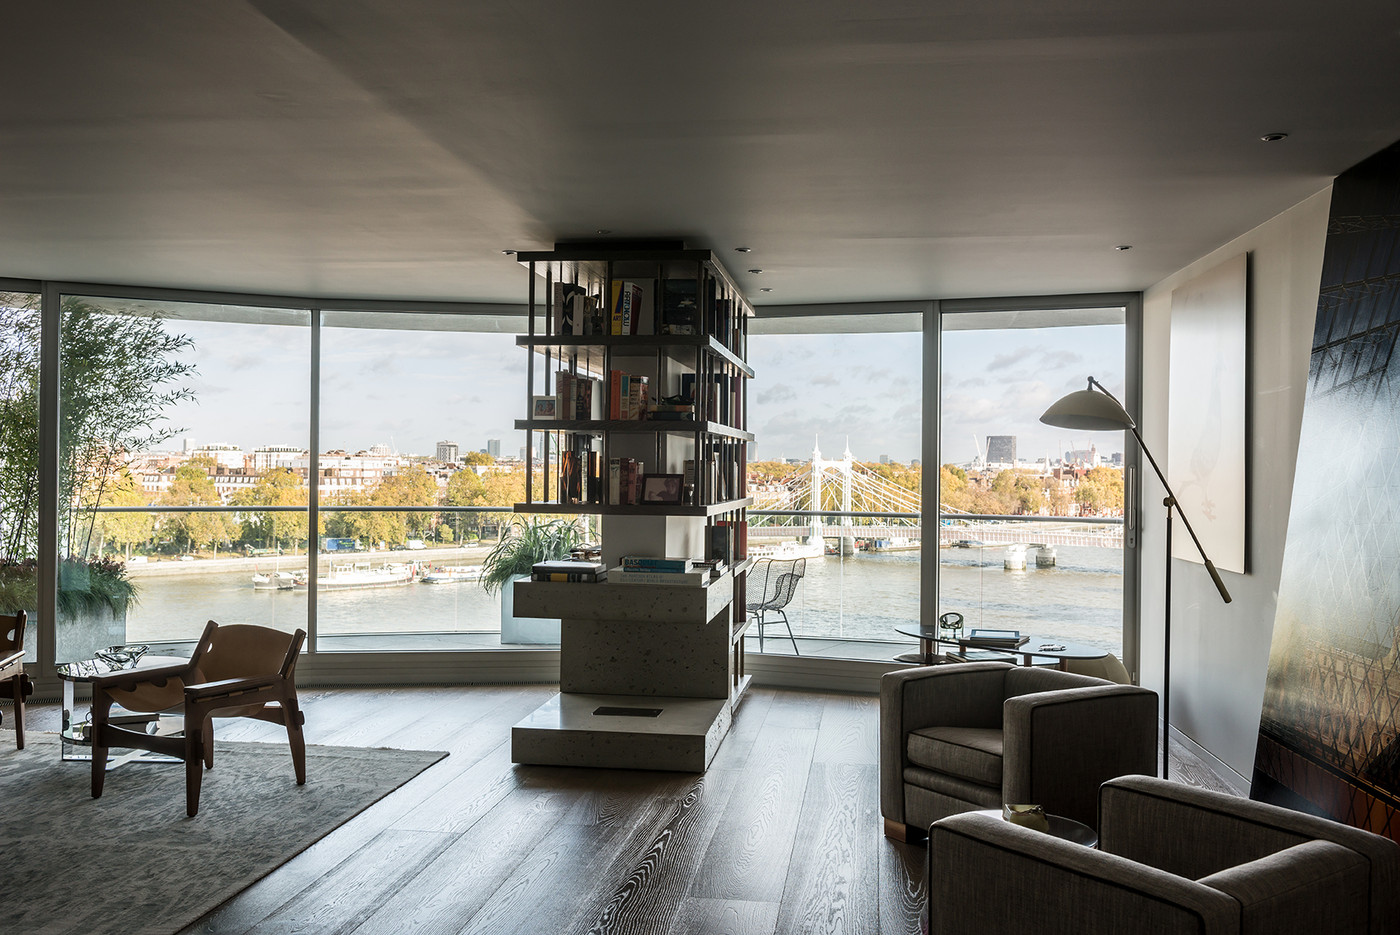 How To Decorate A Room With Floor To Ceiling Windows